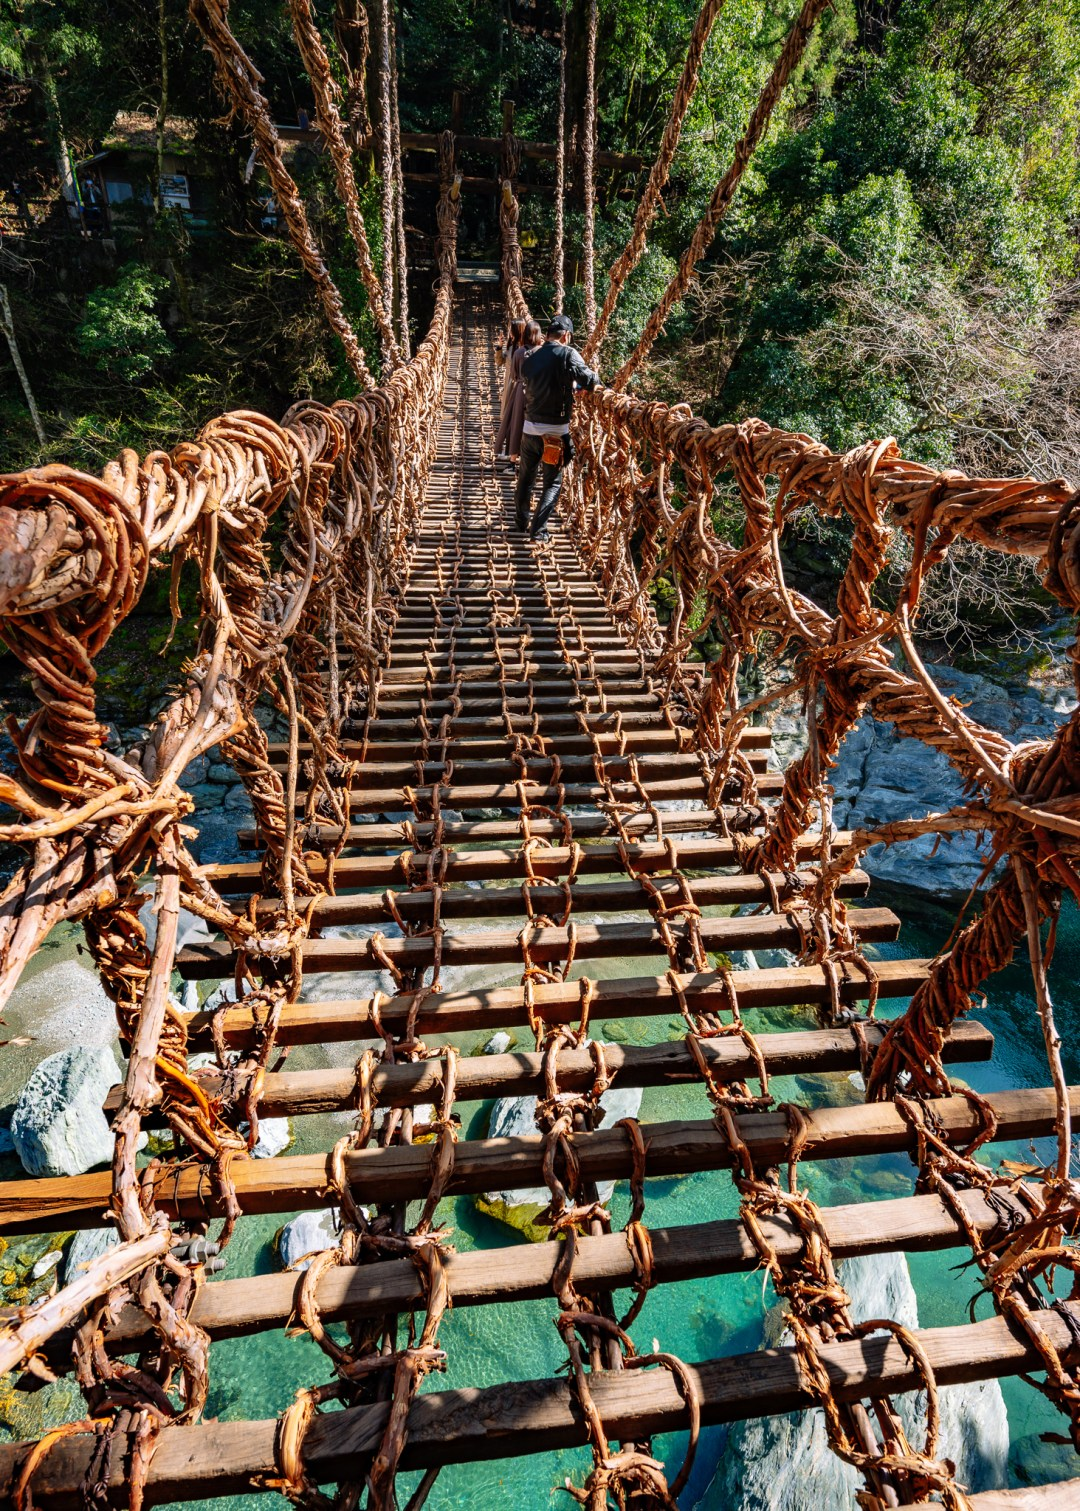 kazurabashi vine suspension bridge in tokushima prefecture japan